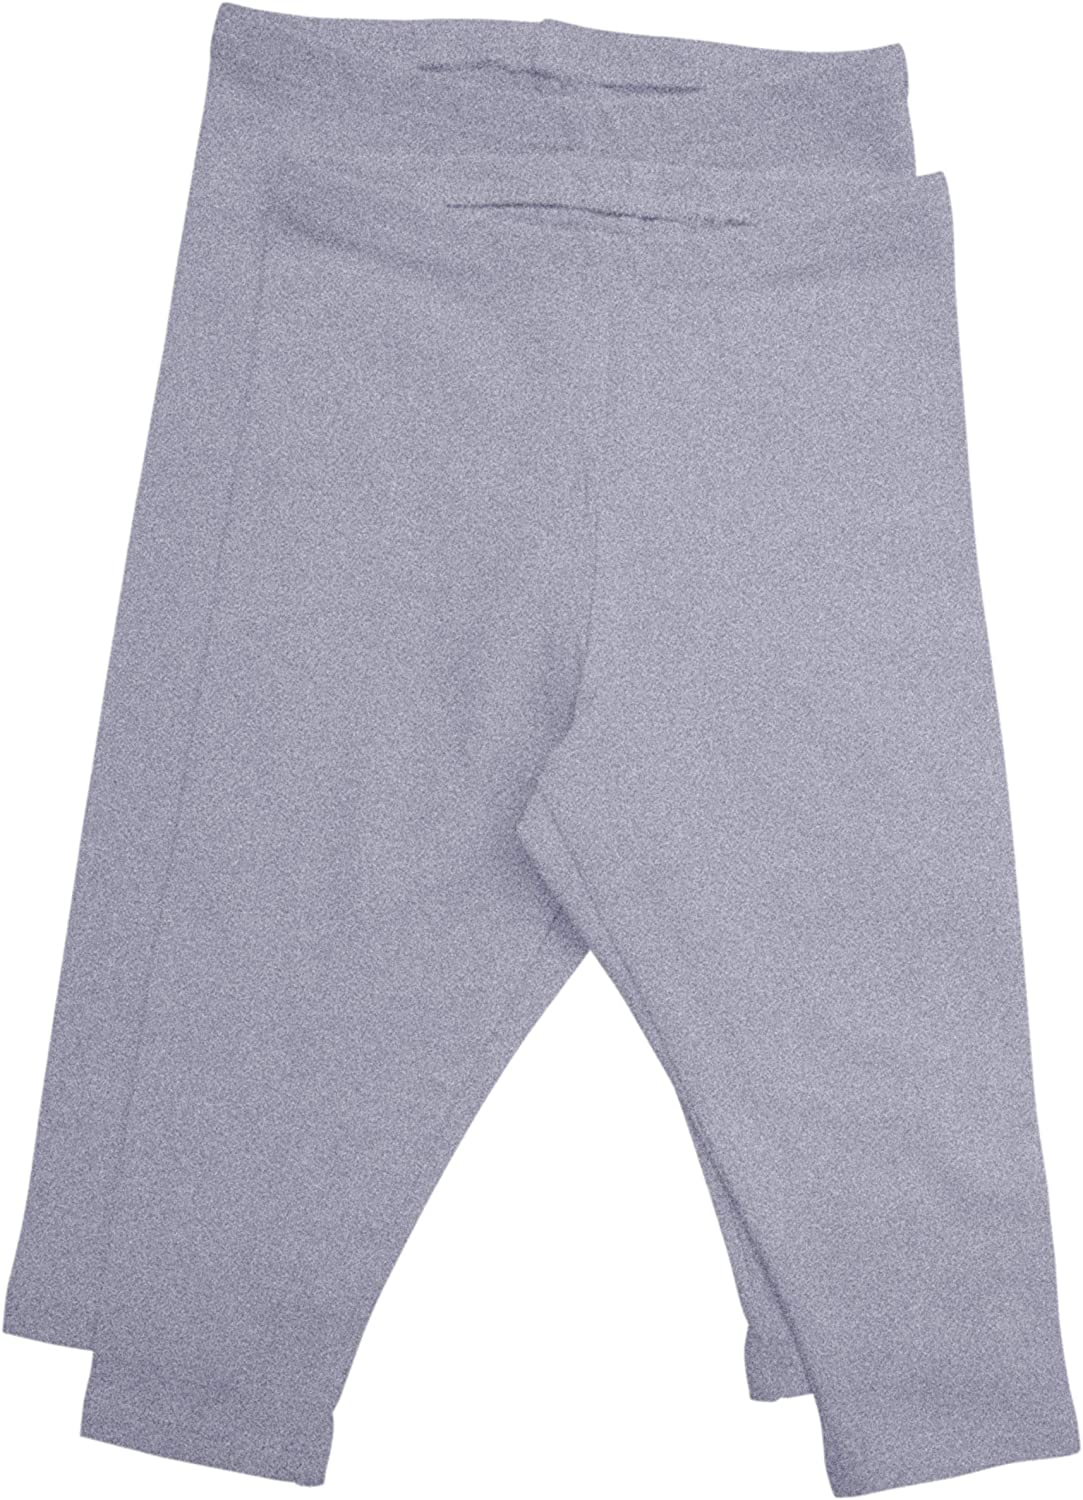 Stretch is Comfort Toddler Infant Leggings Tights 2 Pack